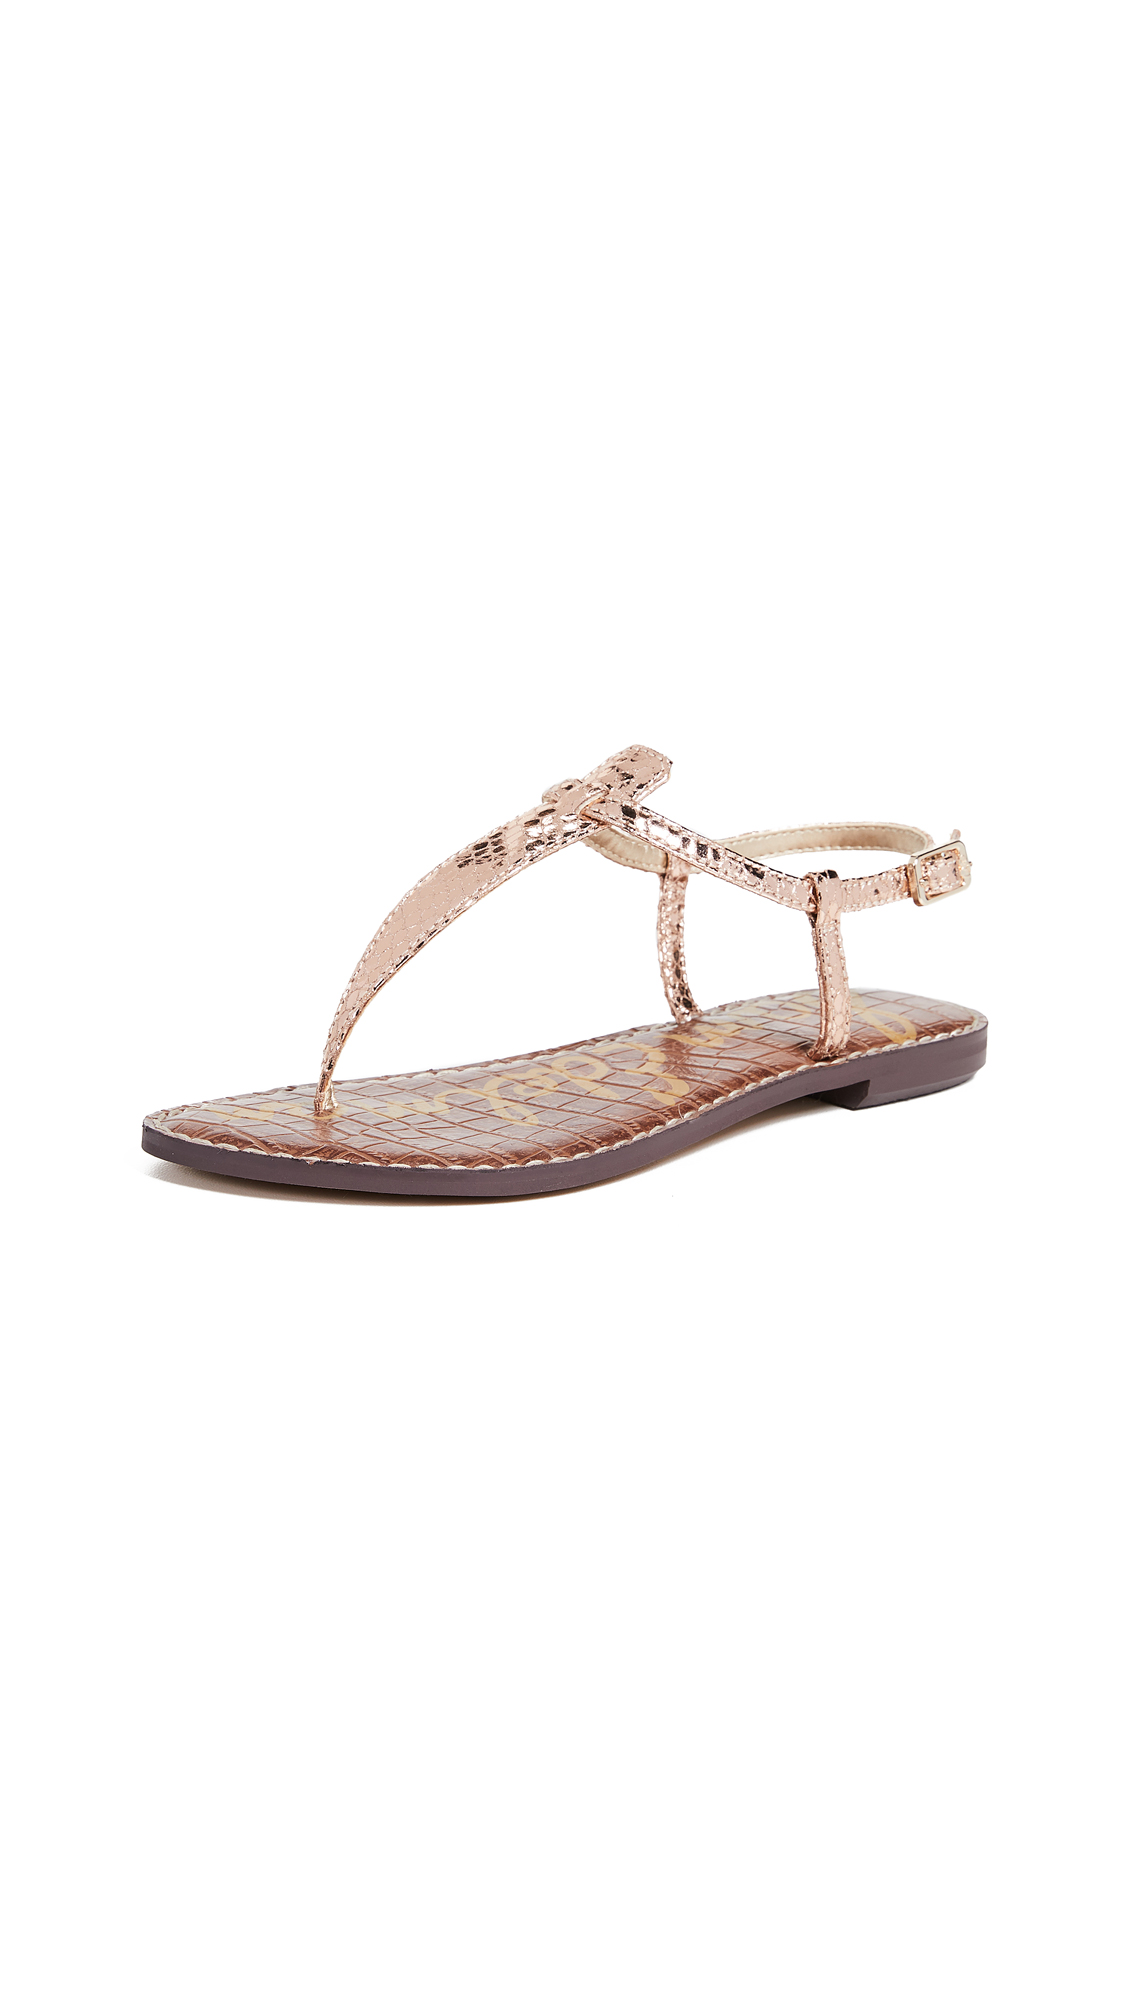 Sam Edelman Gigi Flat Sandals - Rose Gold